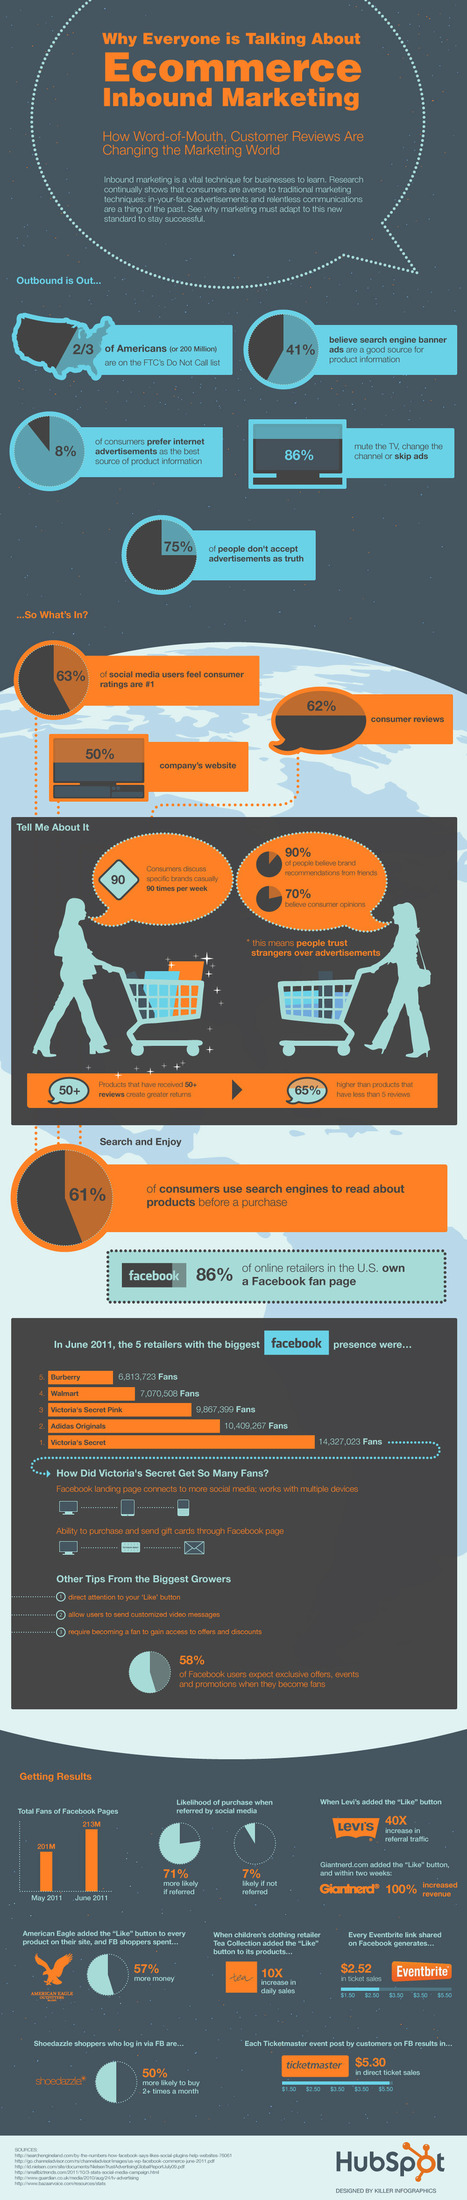 How Does Social Media Affect Purchase Decisions [INFOGRAPHIC] | healincomfort health information | Scoop.it